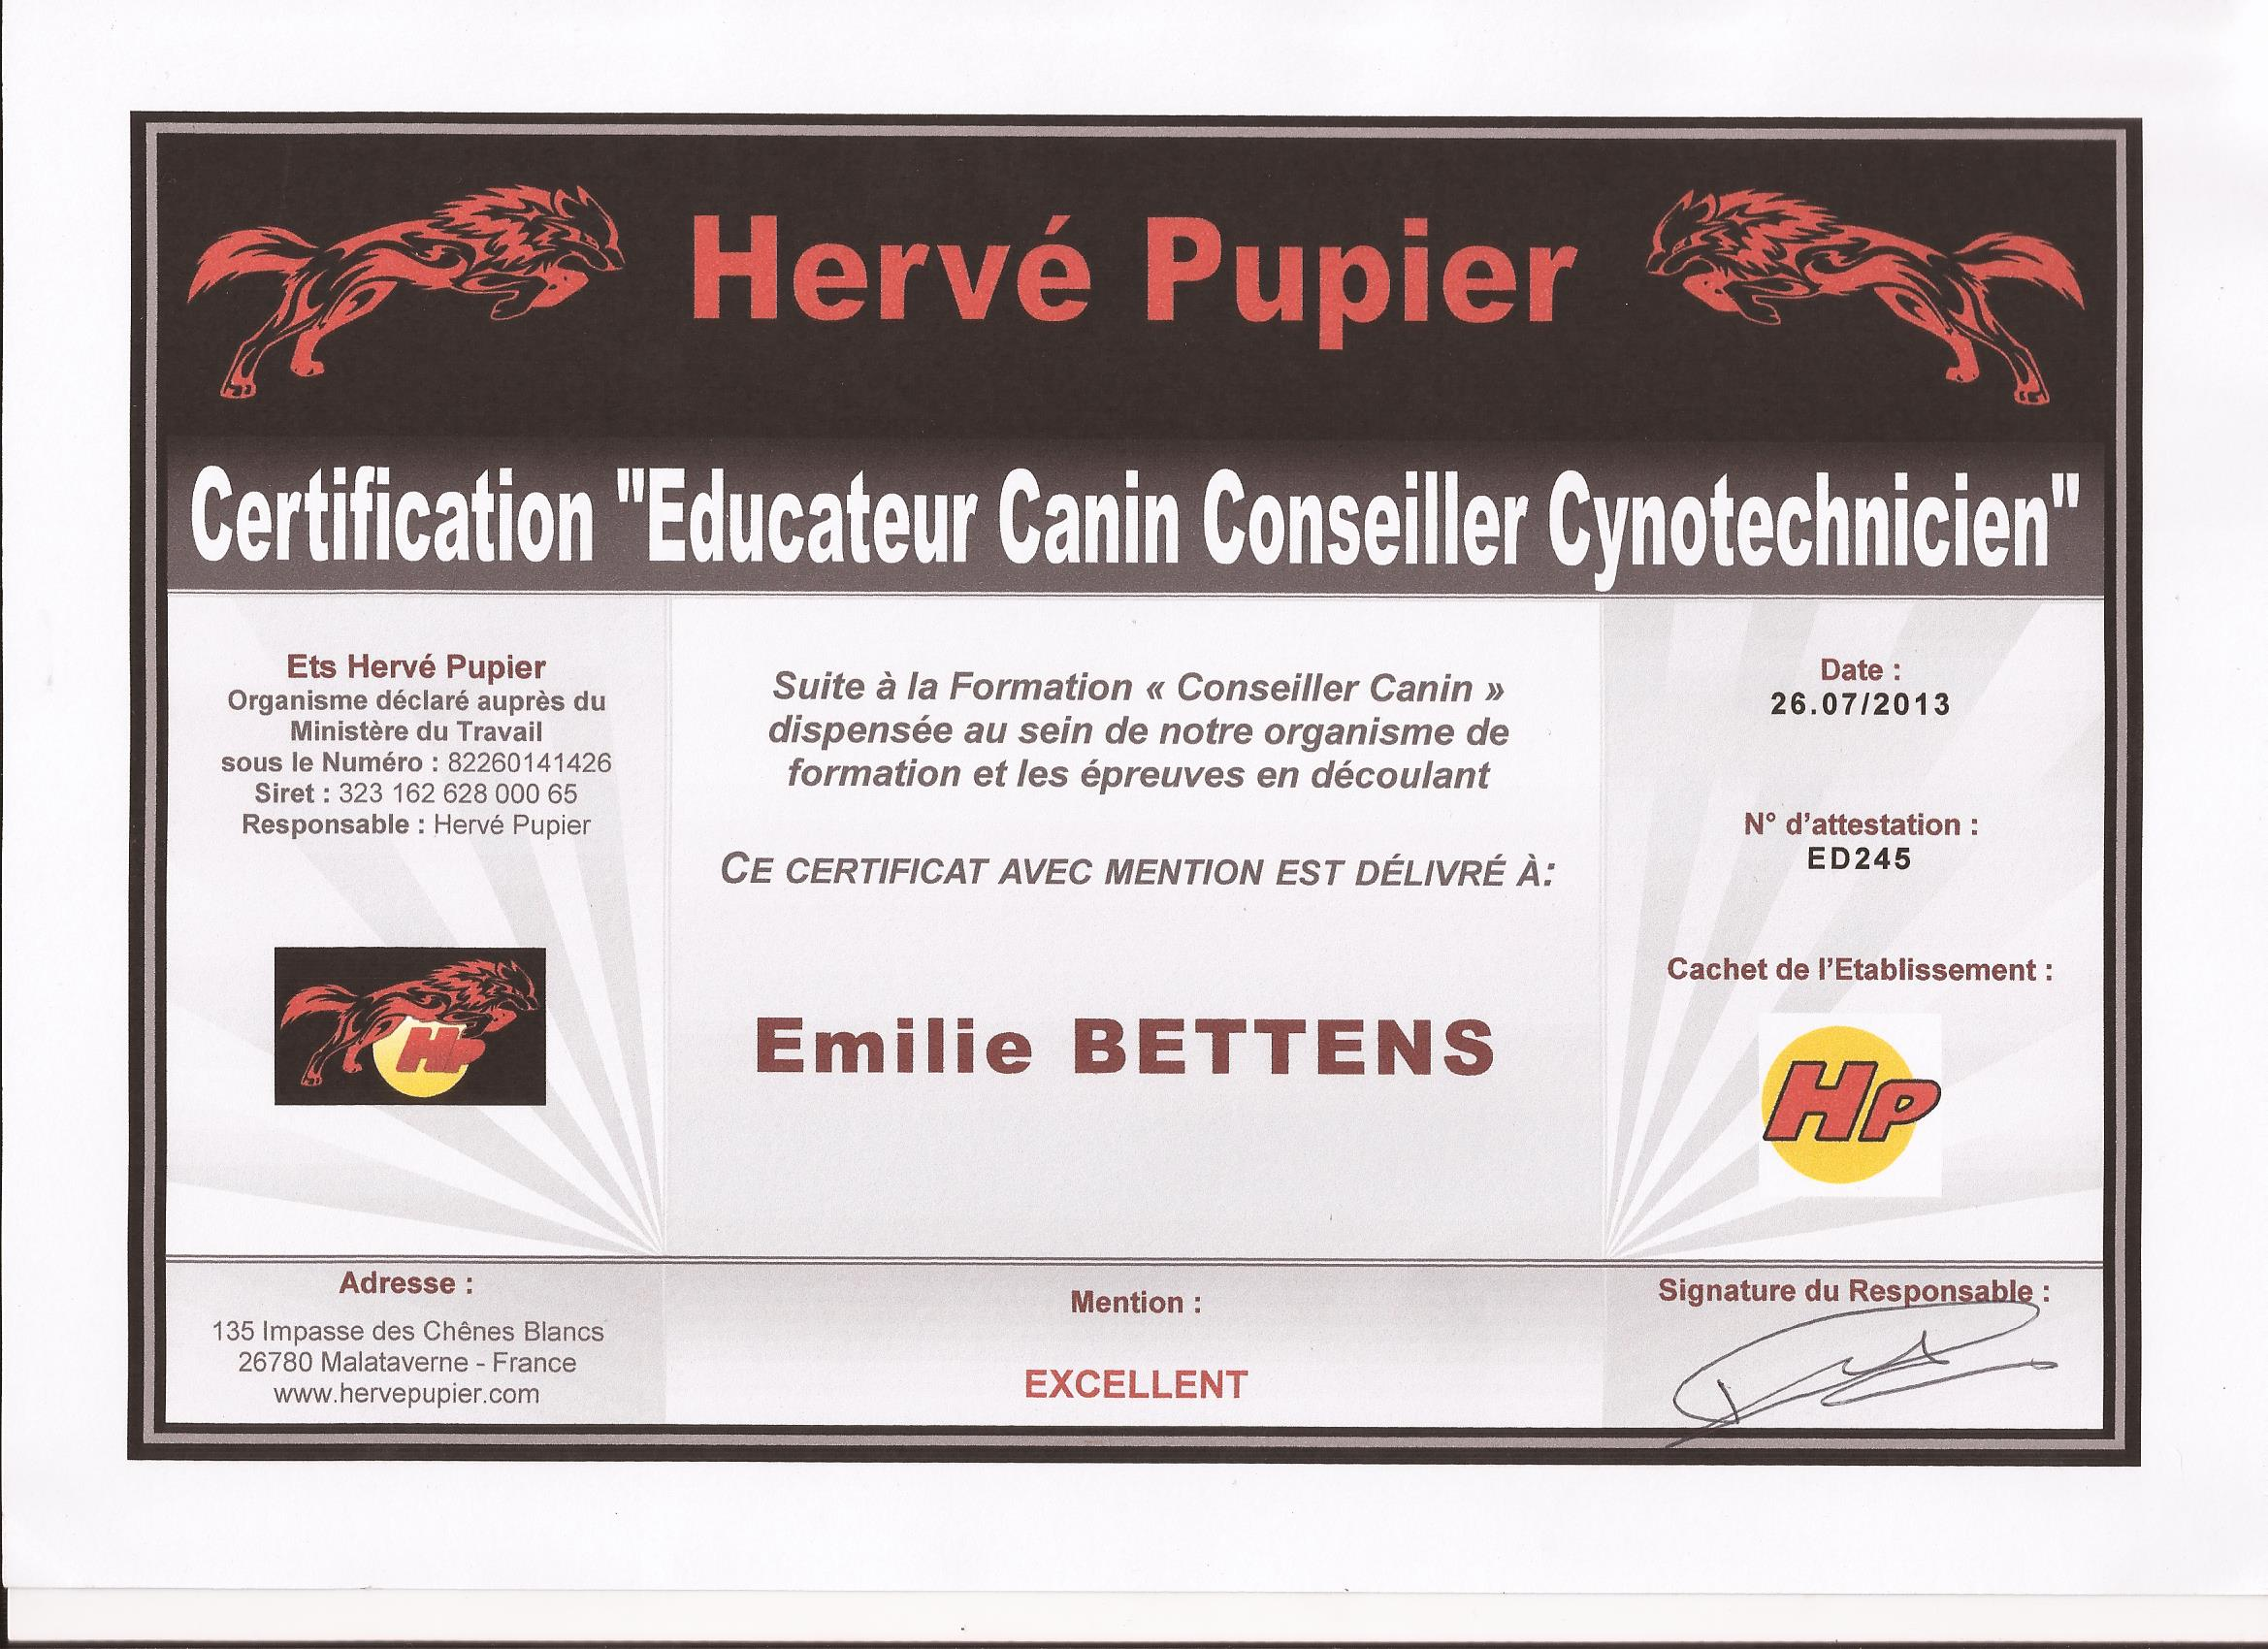 Centre Canin Emilie Bettens